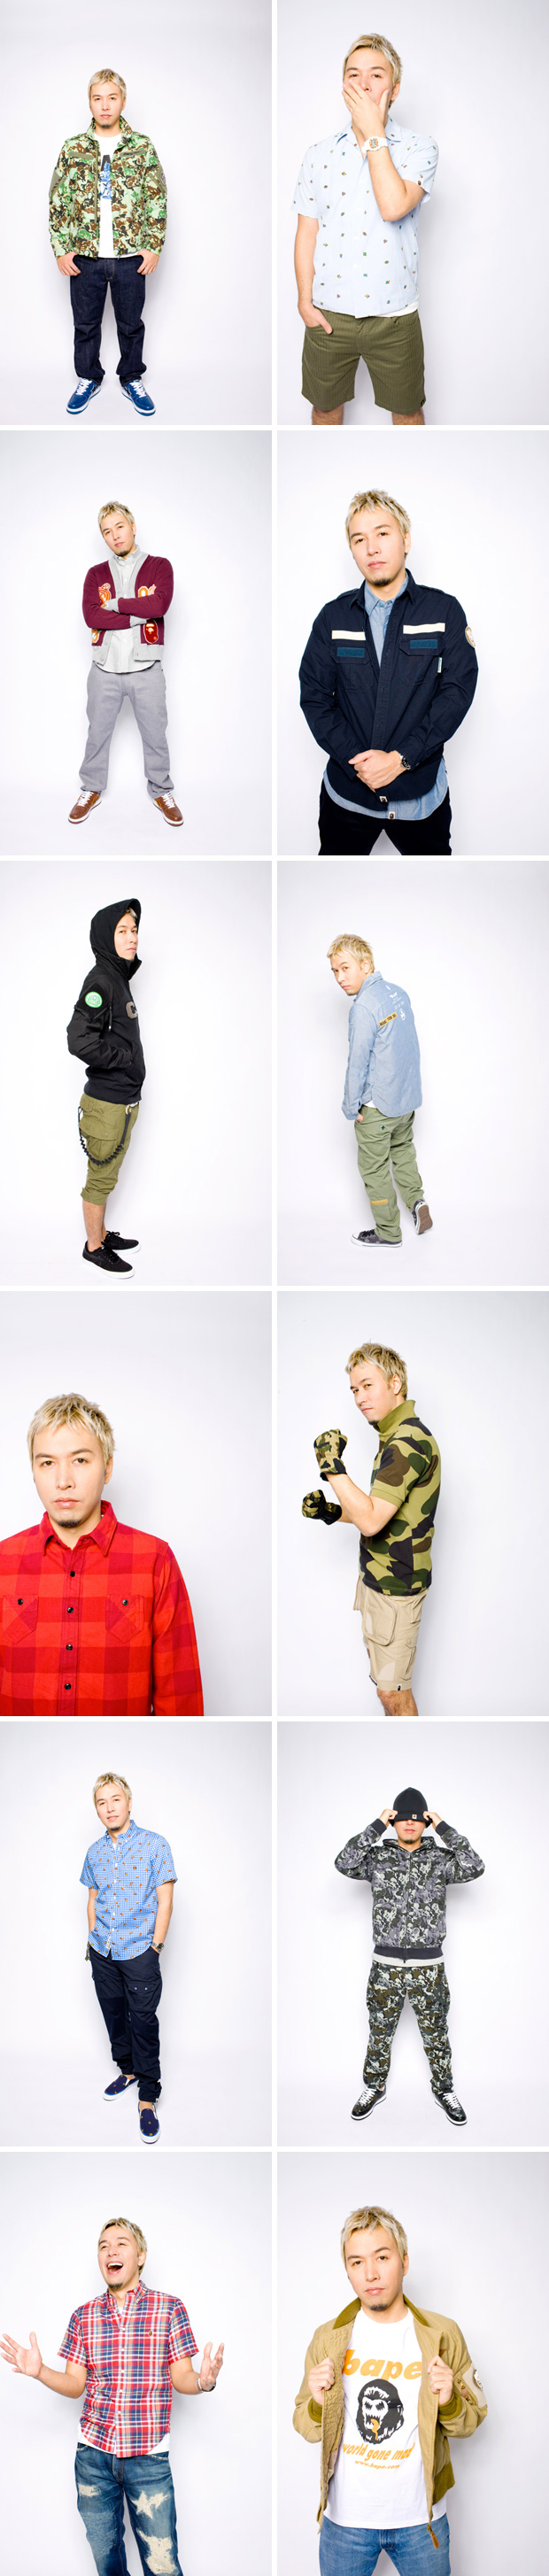 bape 2011 springsummer lookbook